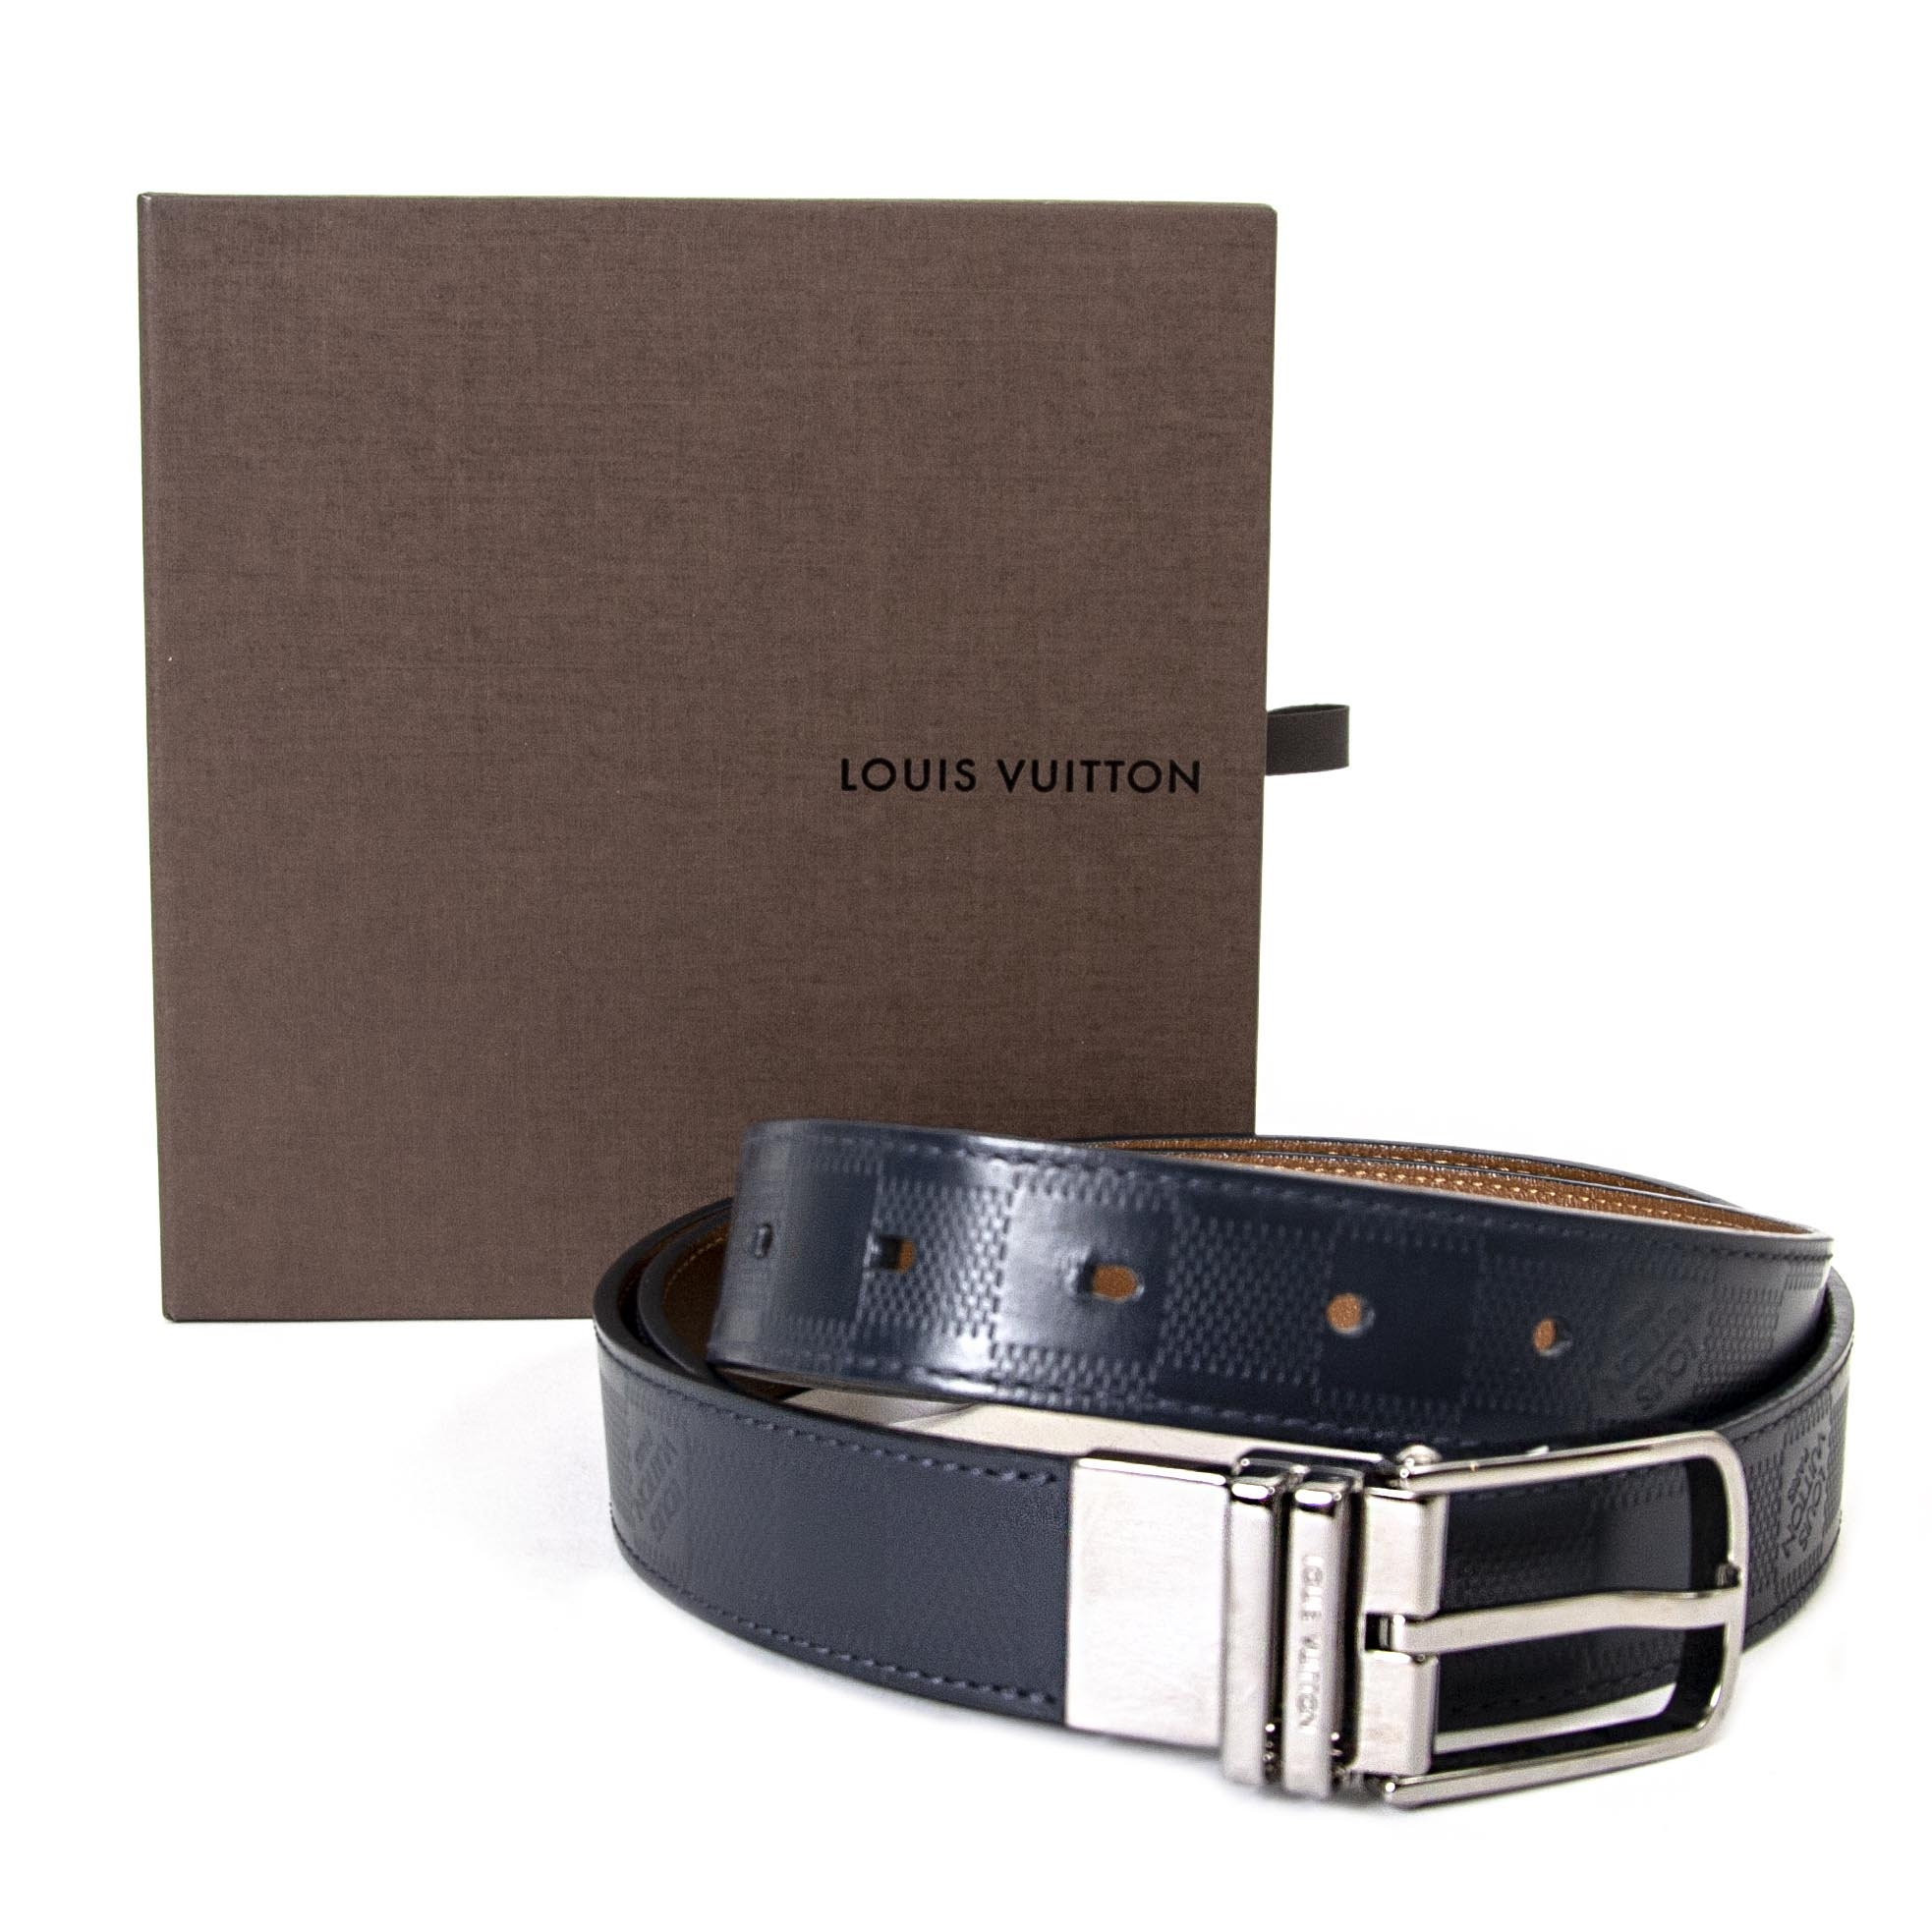 75b208439fa ... skip the waitinglist shop Louis Vuitton Reversible Men Belt - size 105  safe online